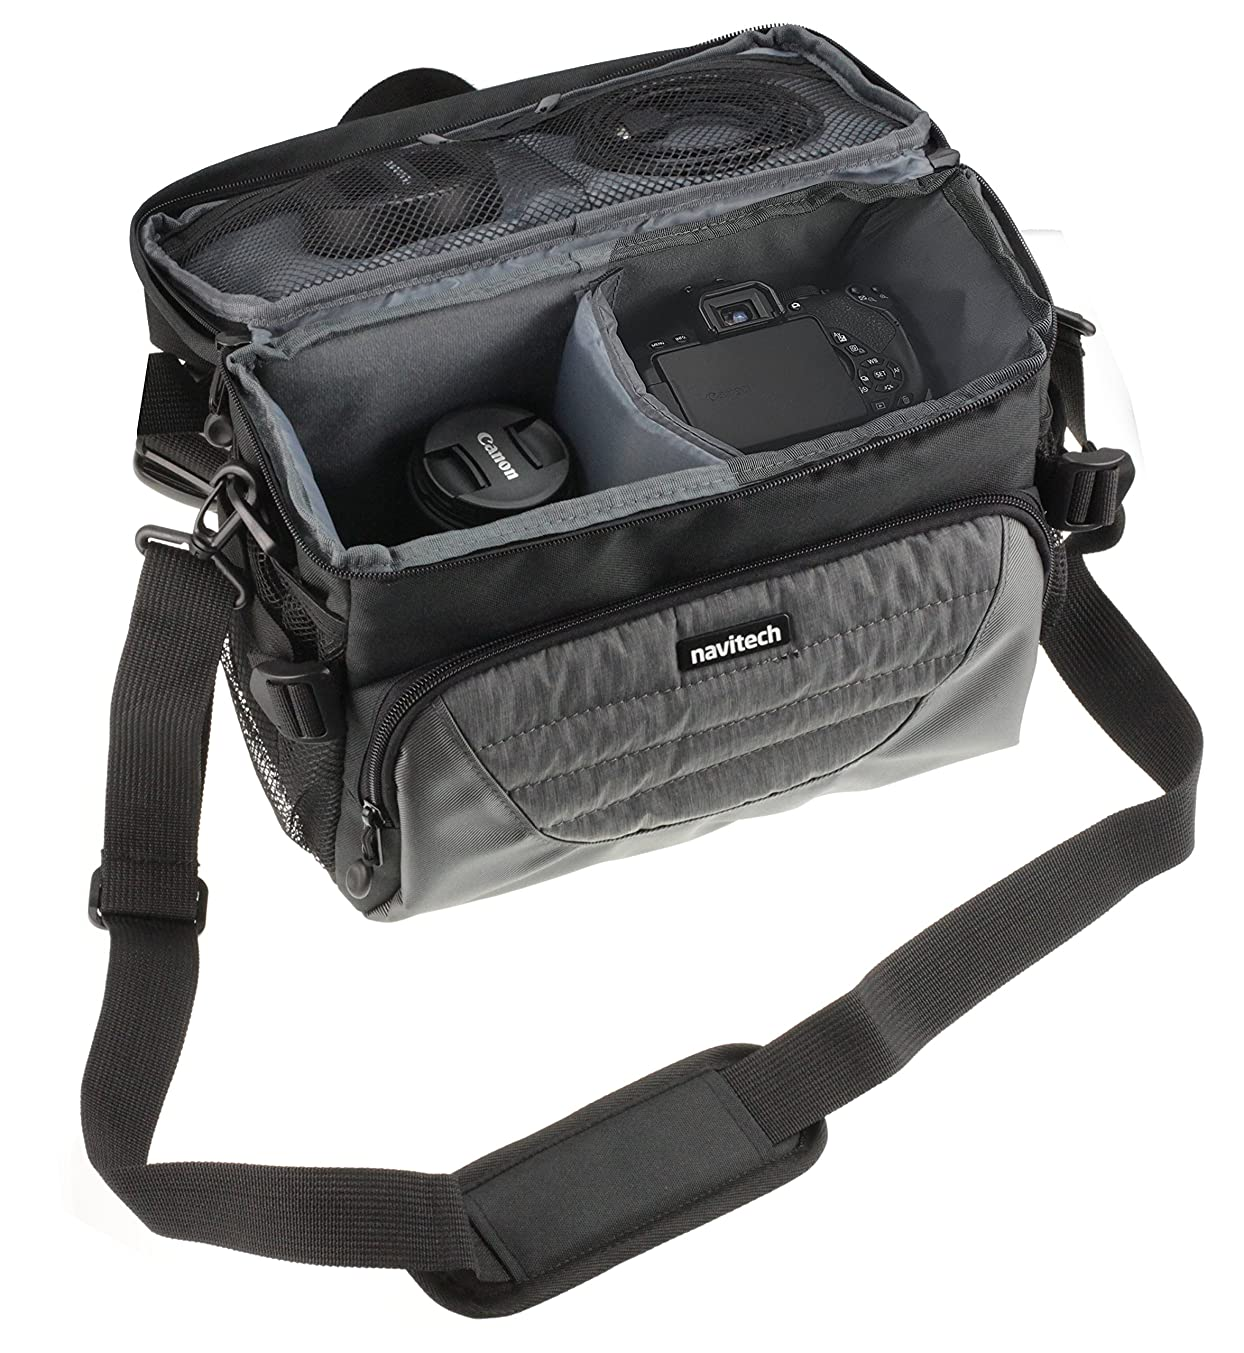 Navitech Grey DSLR & Lens Camera Bag Case Cover Compatible The Olympus OM-D E-M5 Mark II